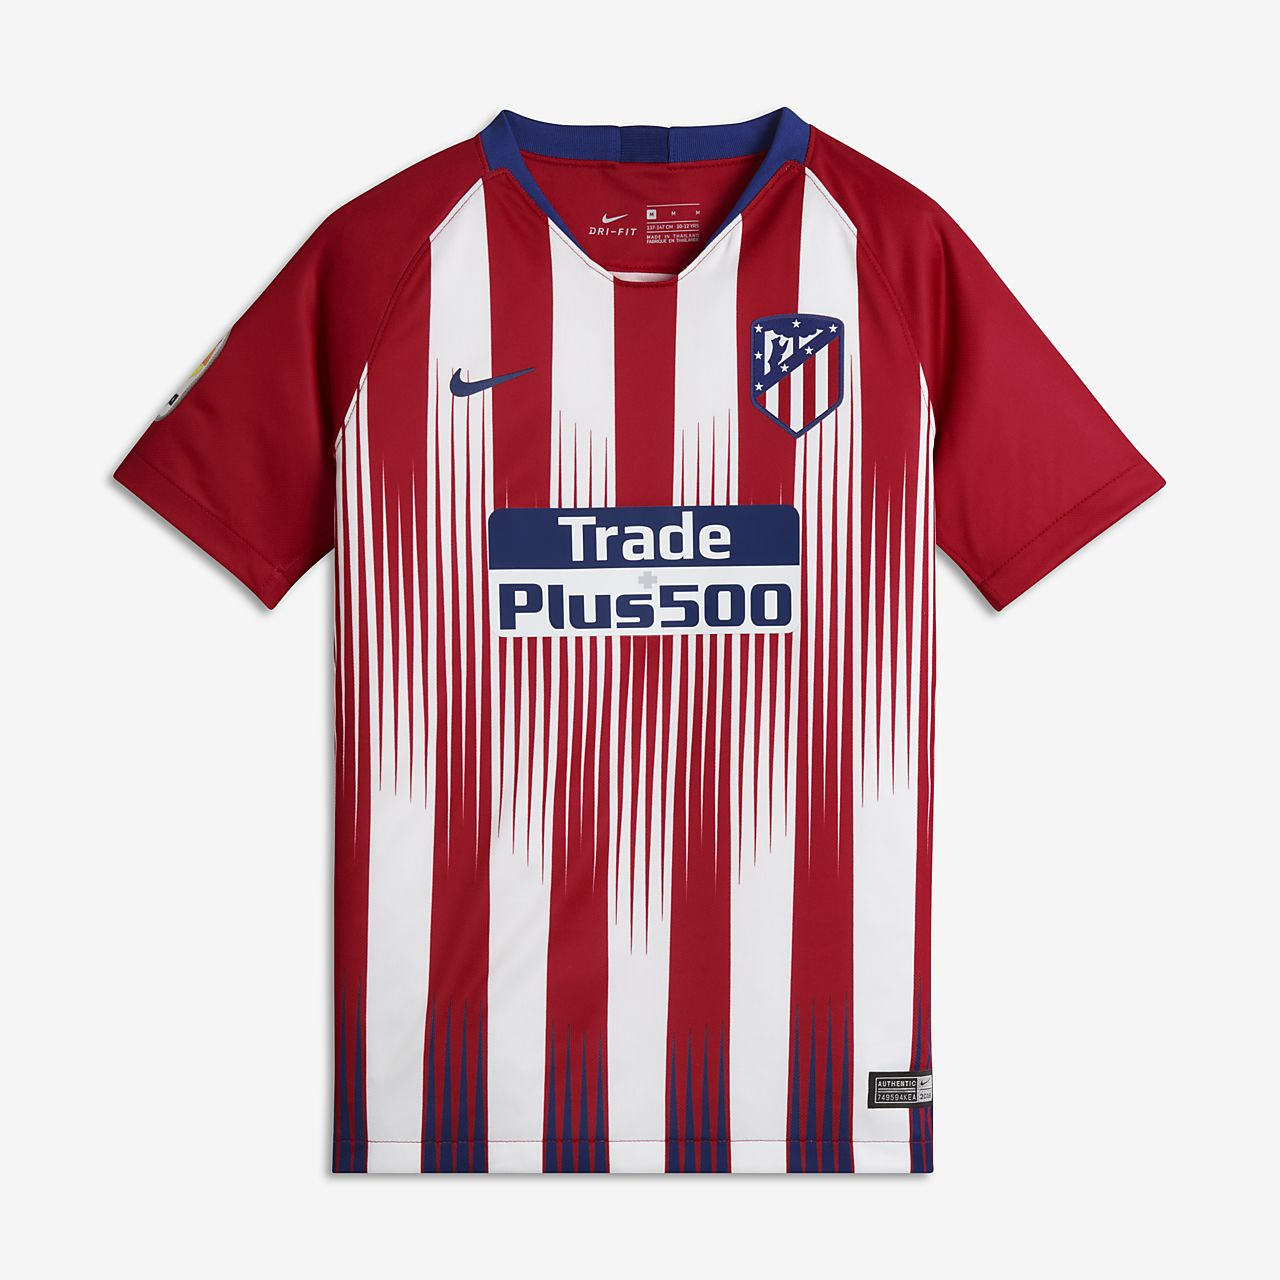 bcec864d0dc 2018 19 Atletico de Madrid Stadium Home Older Kids  Football Shirt ...